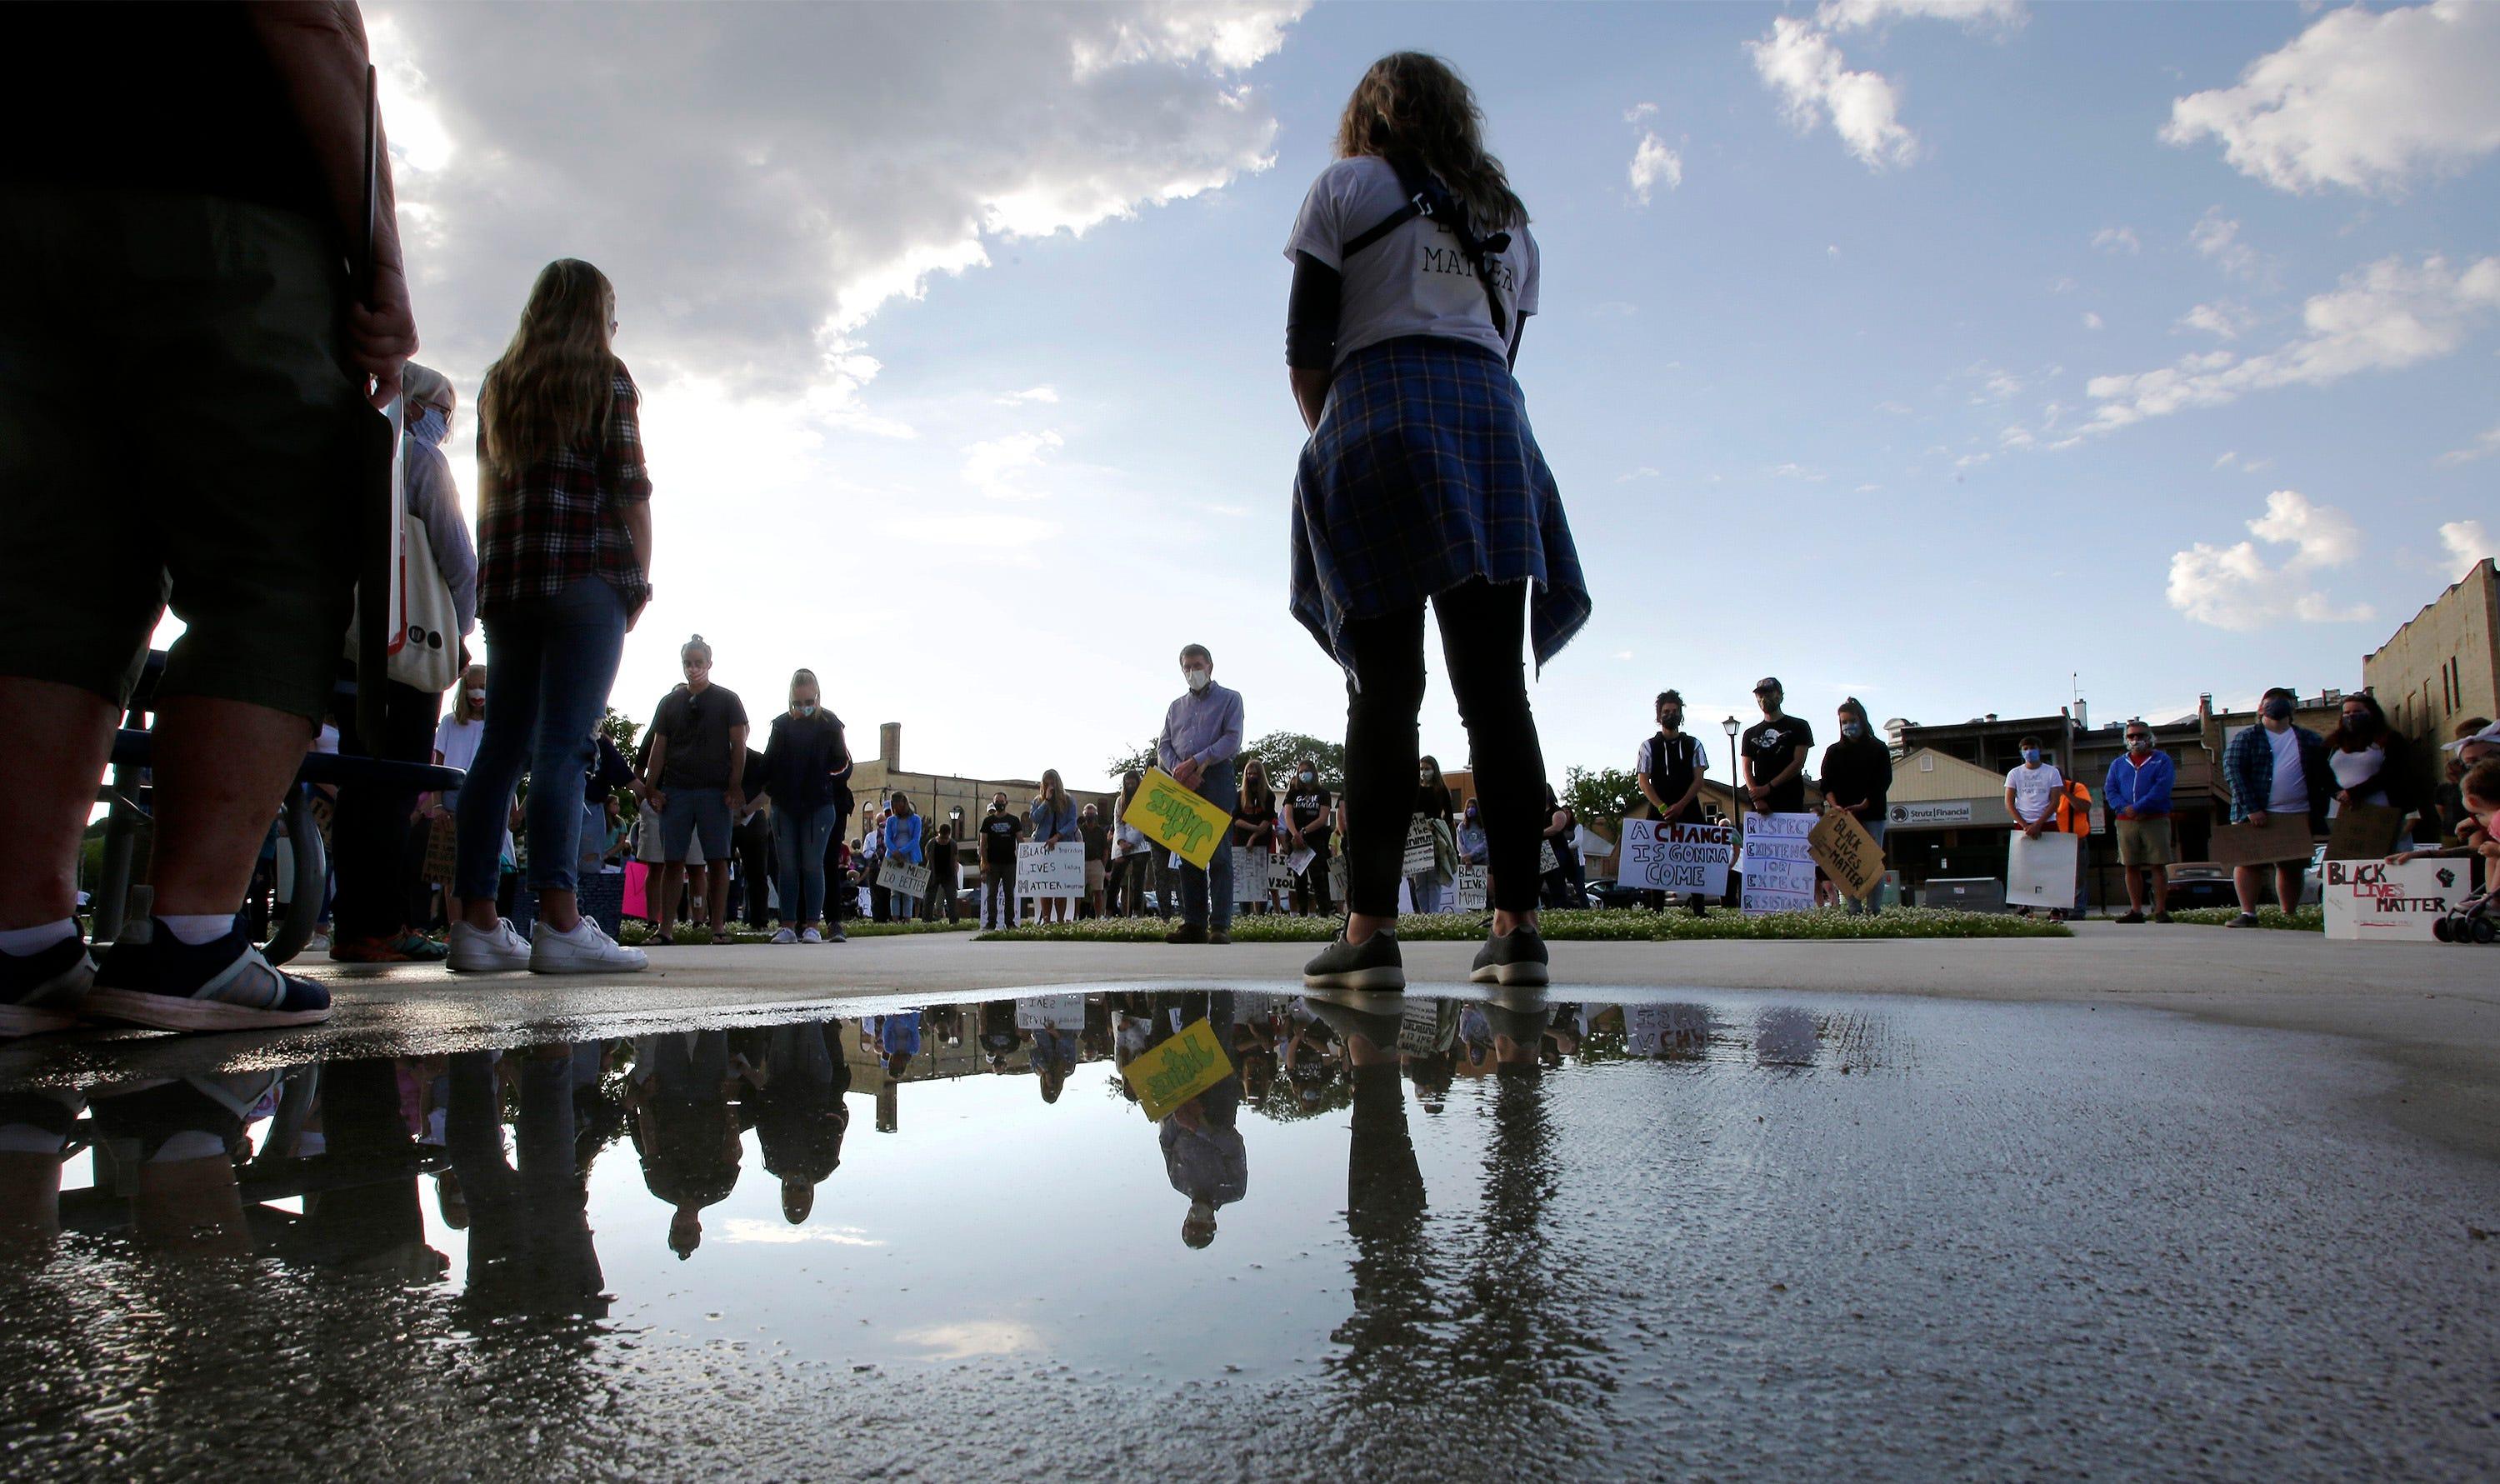 People are reflected in a water puddle during the time of silence during March for Justice, Black Lives Matter protest, Thursday, June 11, 2020, in Plymouth, Wis.